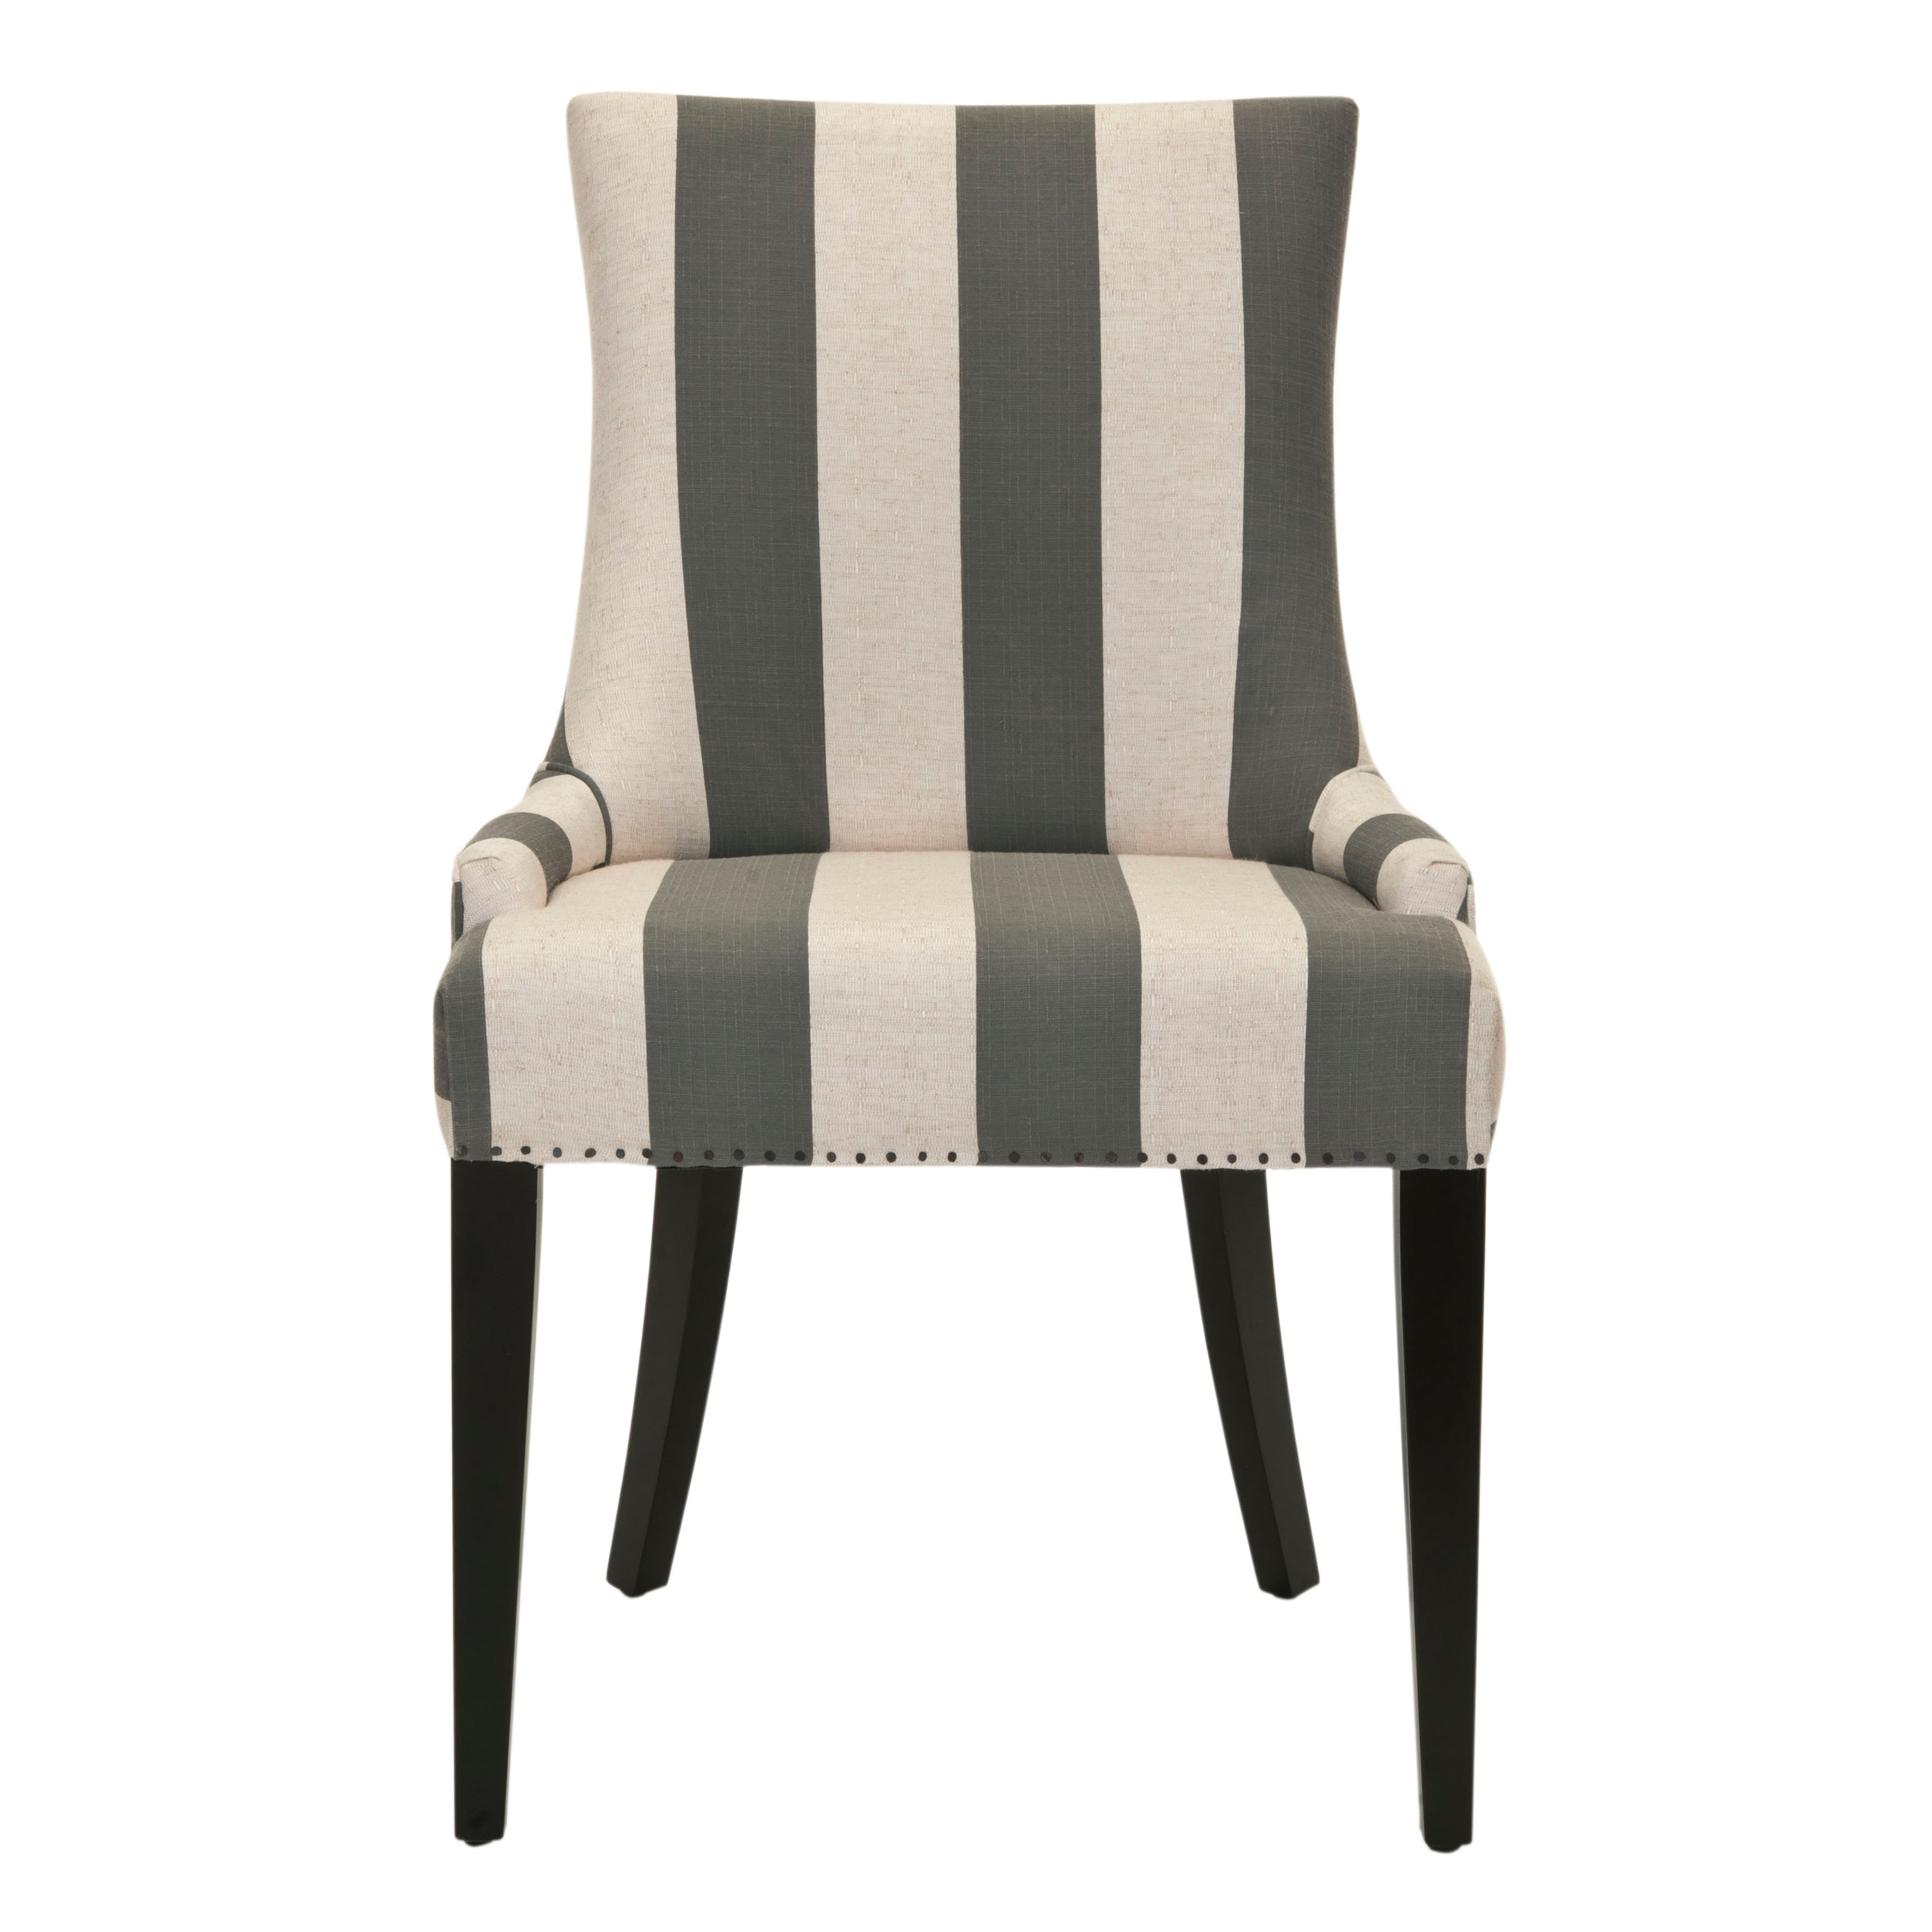 Safavieh Alexia Bold Stripe Fabric Dining Chair Java